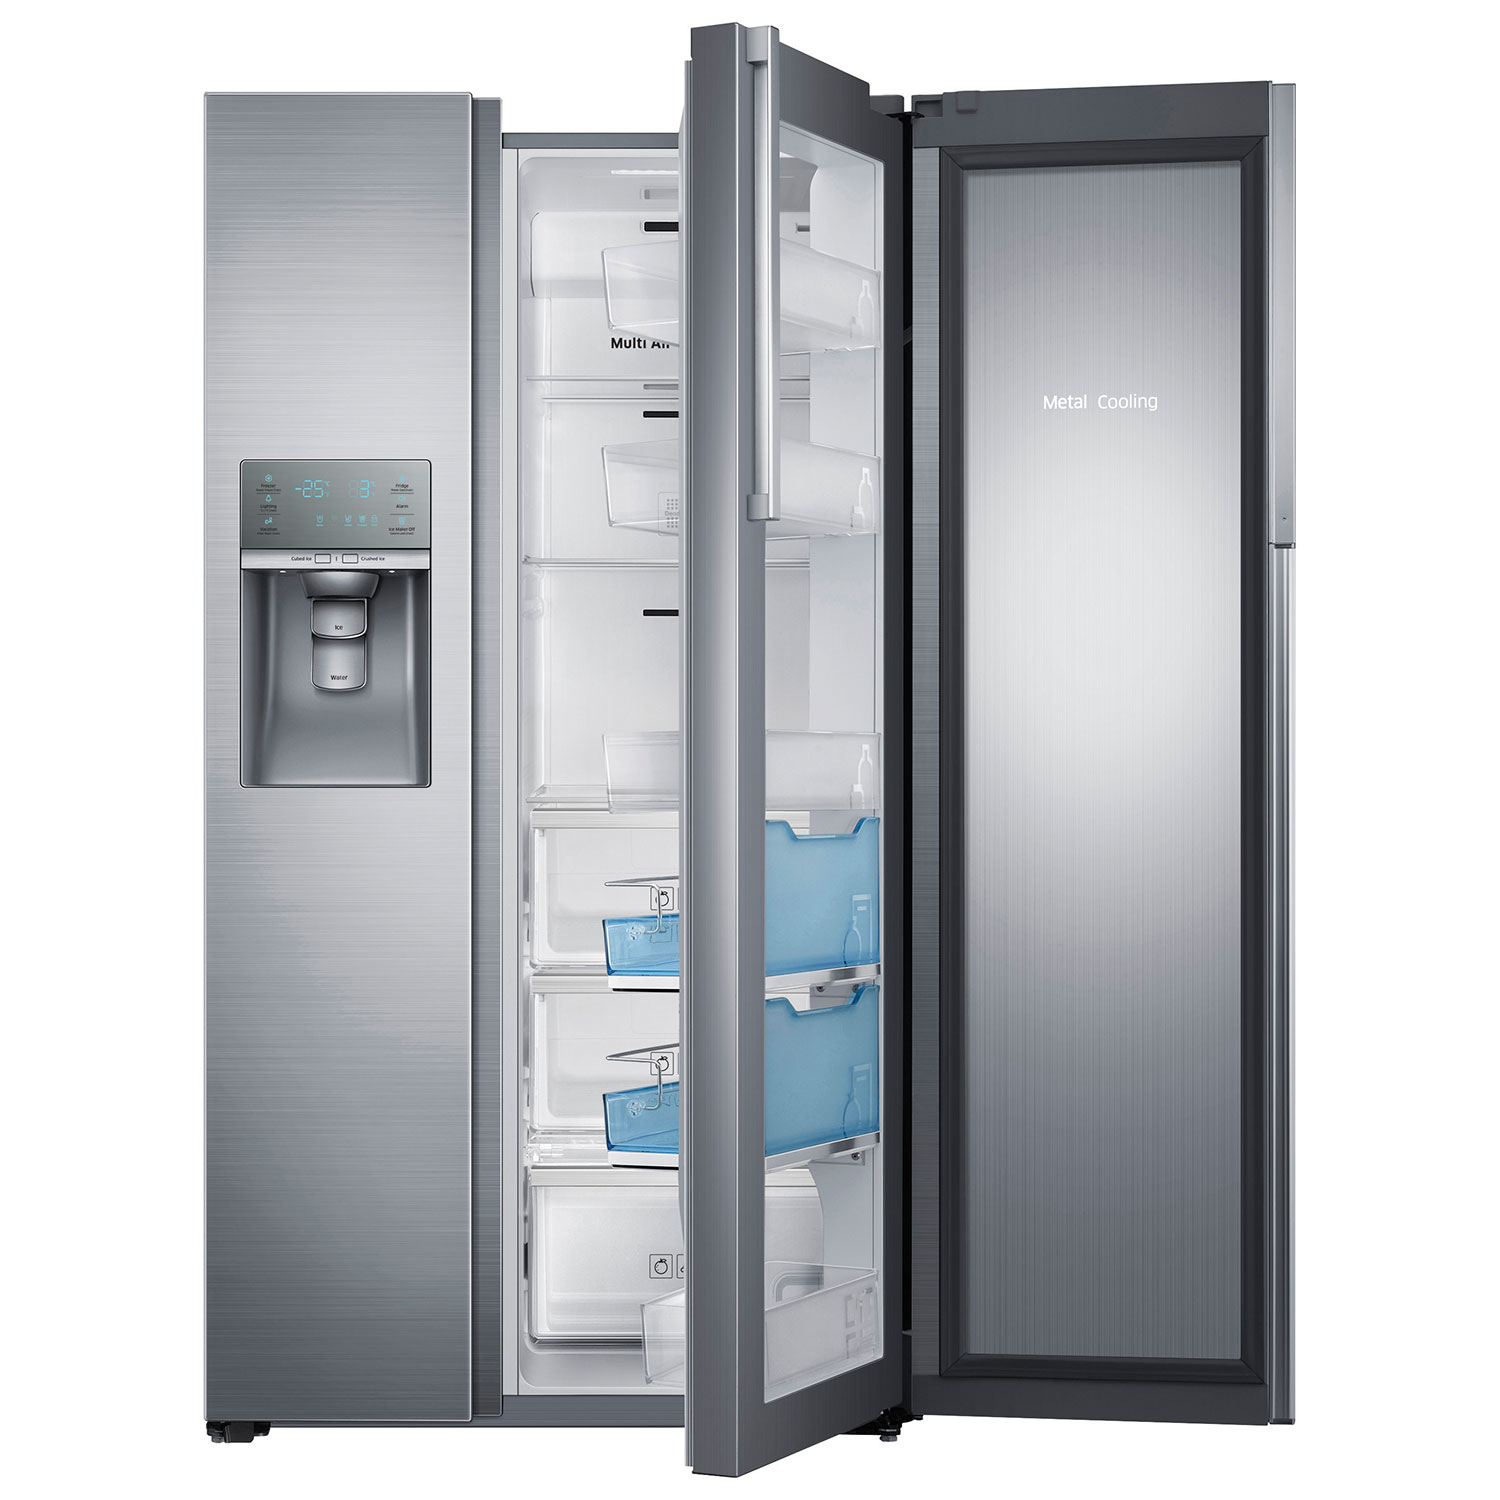 Samsung 357 215 Cu Ft Side By Side Counter Depth Refrigerator